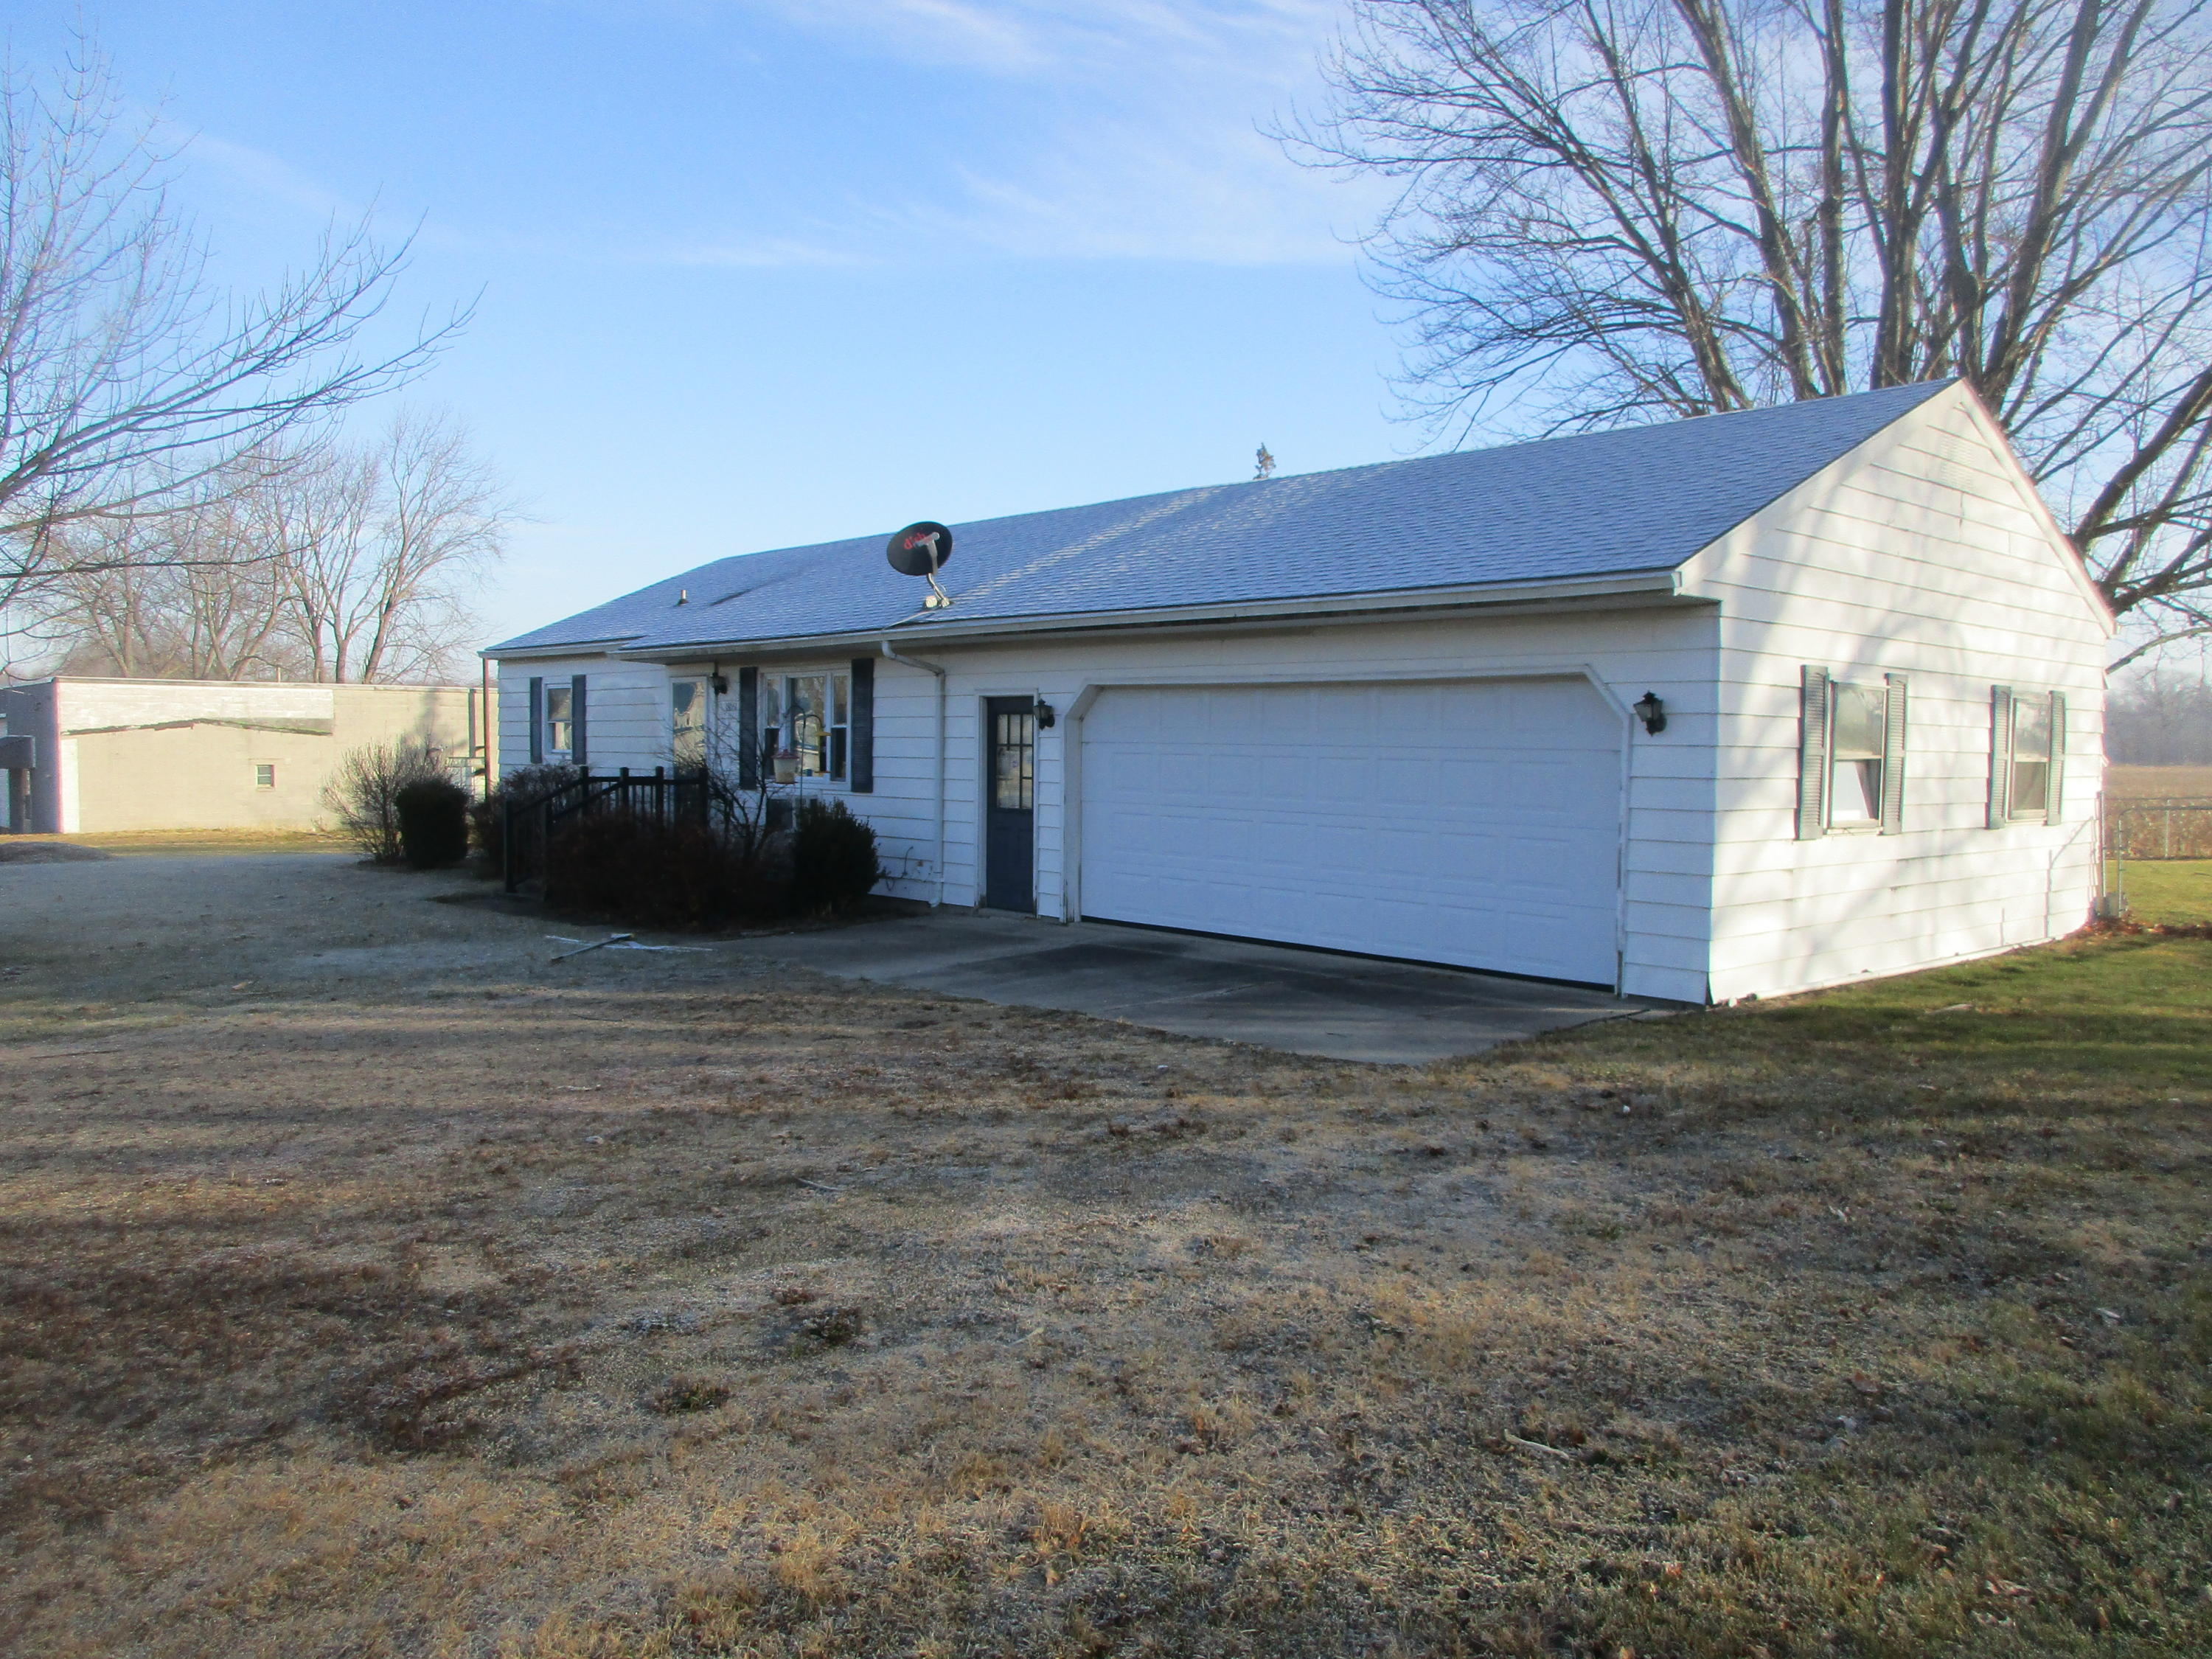 18051 49 Property Photo - Willshire, OH real estate listing